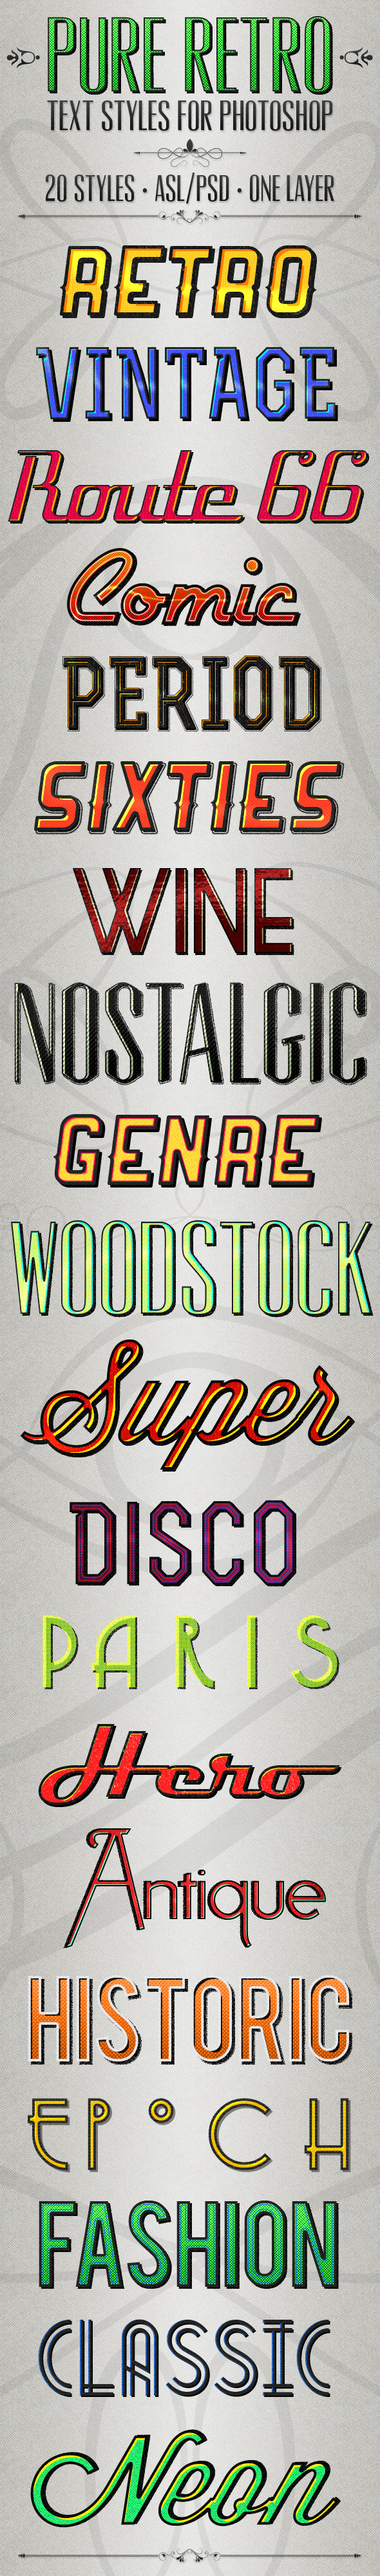 Pure Retro - Text Styles - Text Effects Styles